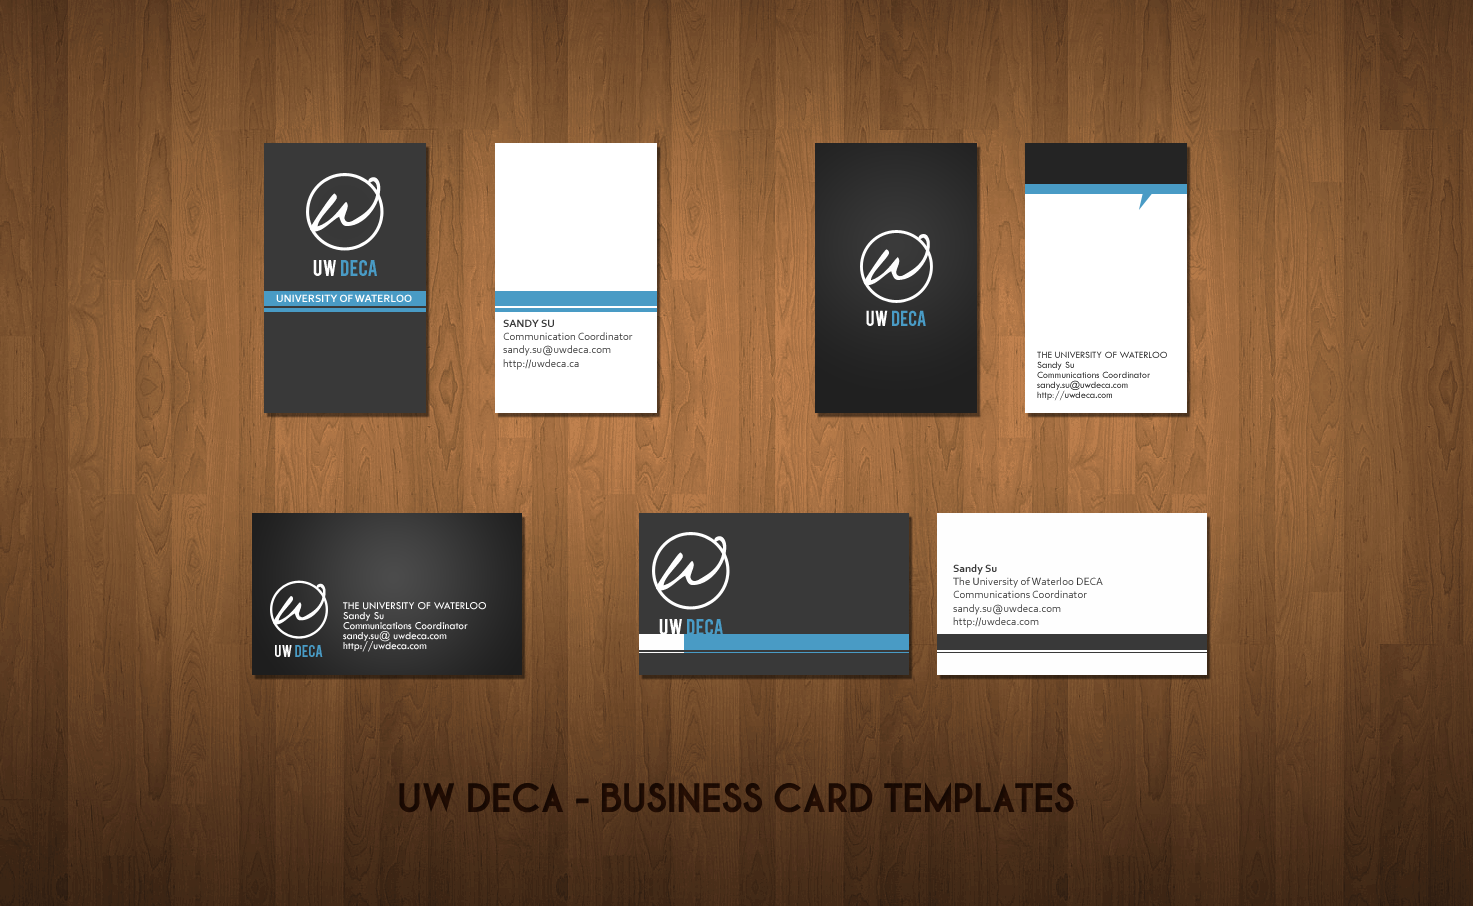 Uw deca business cards by definedesign on deviantart uw deca business cards by definedesign colourmoves